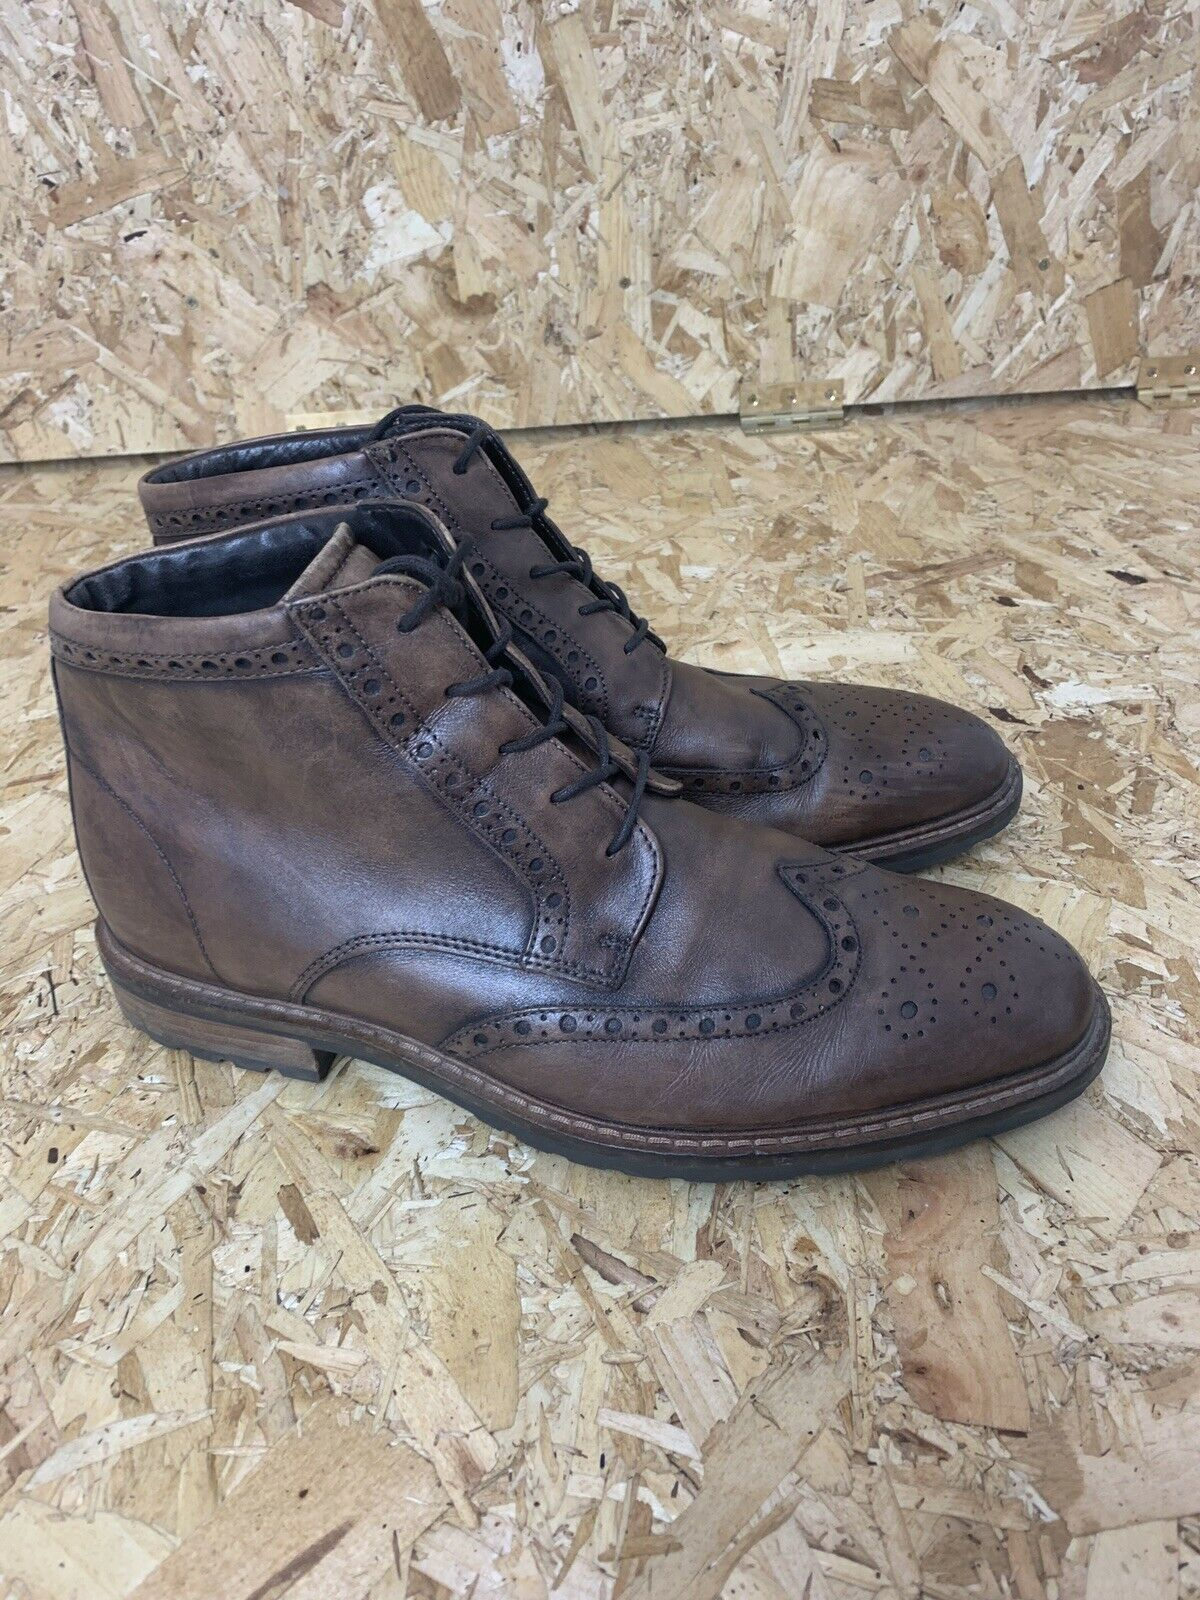 Men's ECCO Brown Leather Brogue Boots Shoes. UK Size 13 Wide .